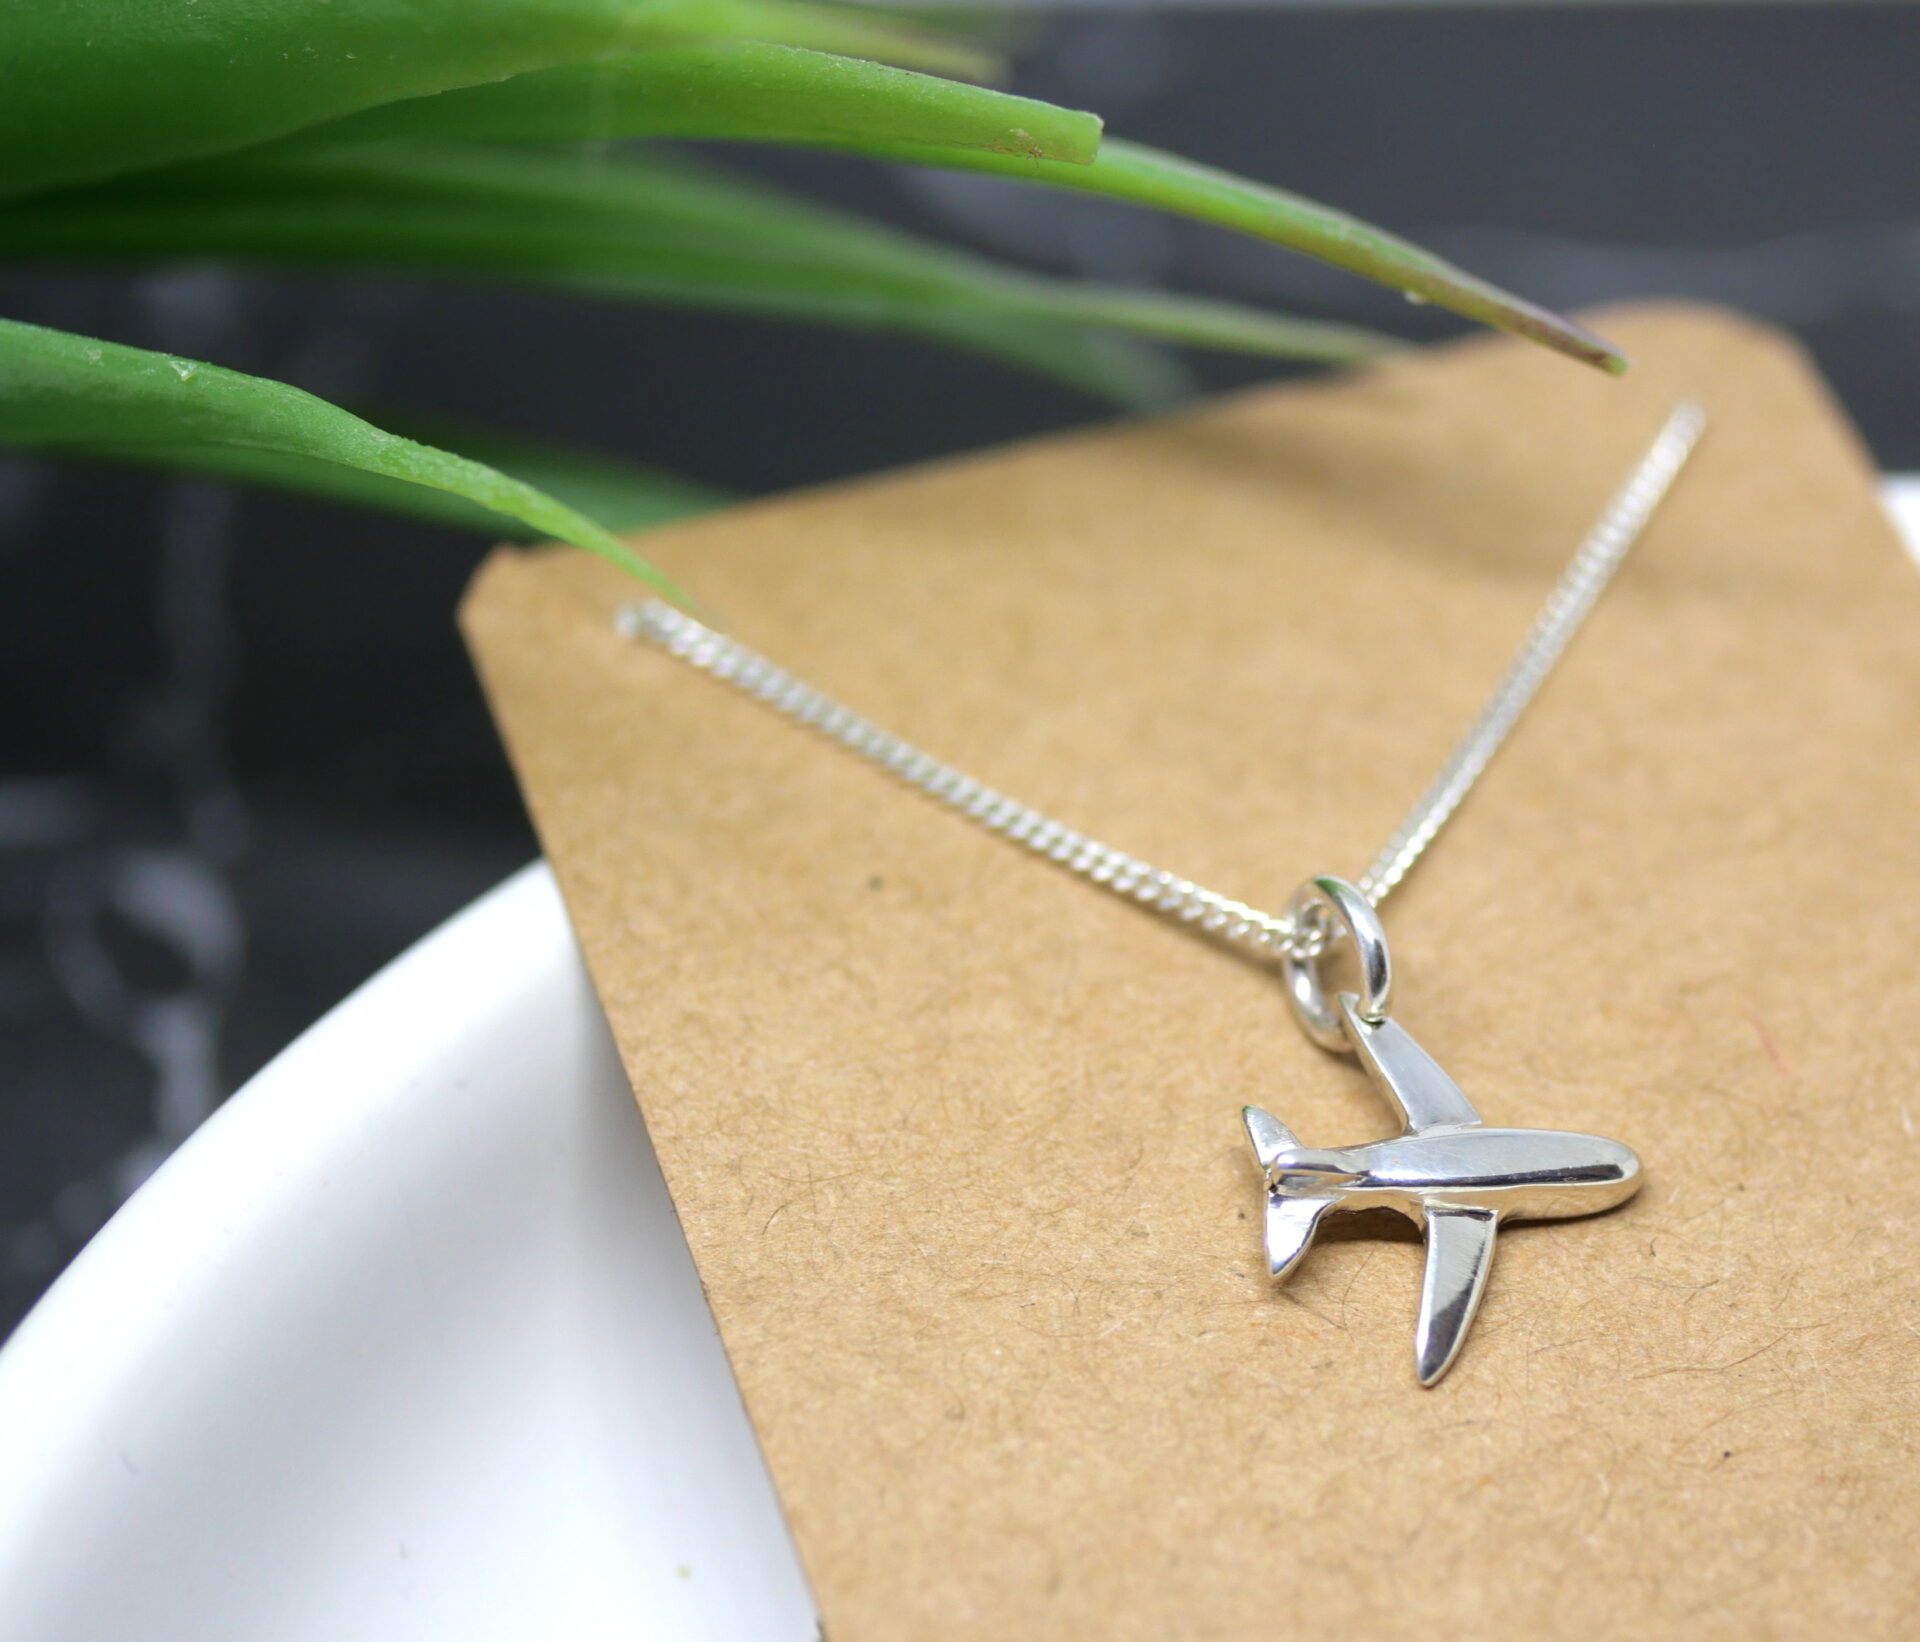 Tiny Plane – Handmade Solid Sterling Silver Aeroplane Pendant With Fine Chain By Purplefish Designs